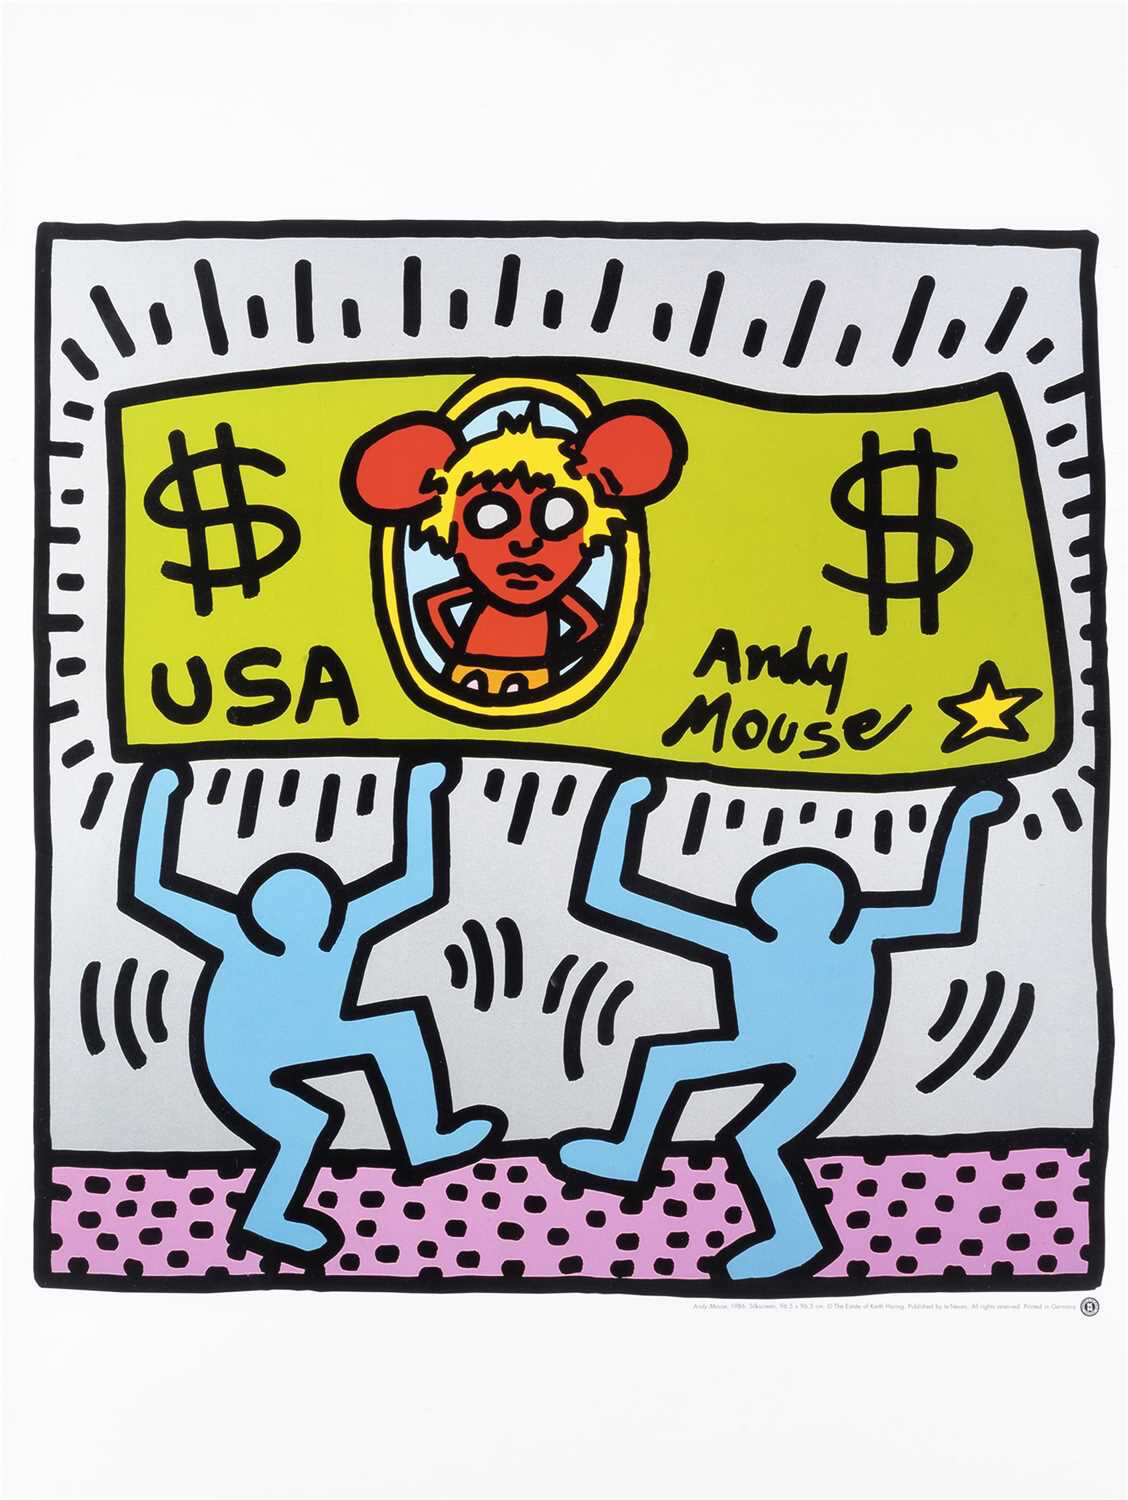 Keith Haring (American 1958-1990), 'Andy Mouse', 1986